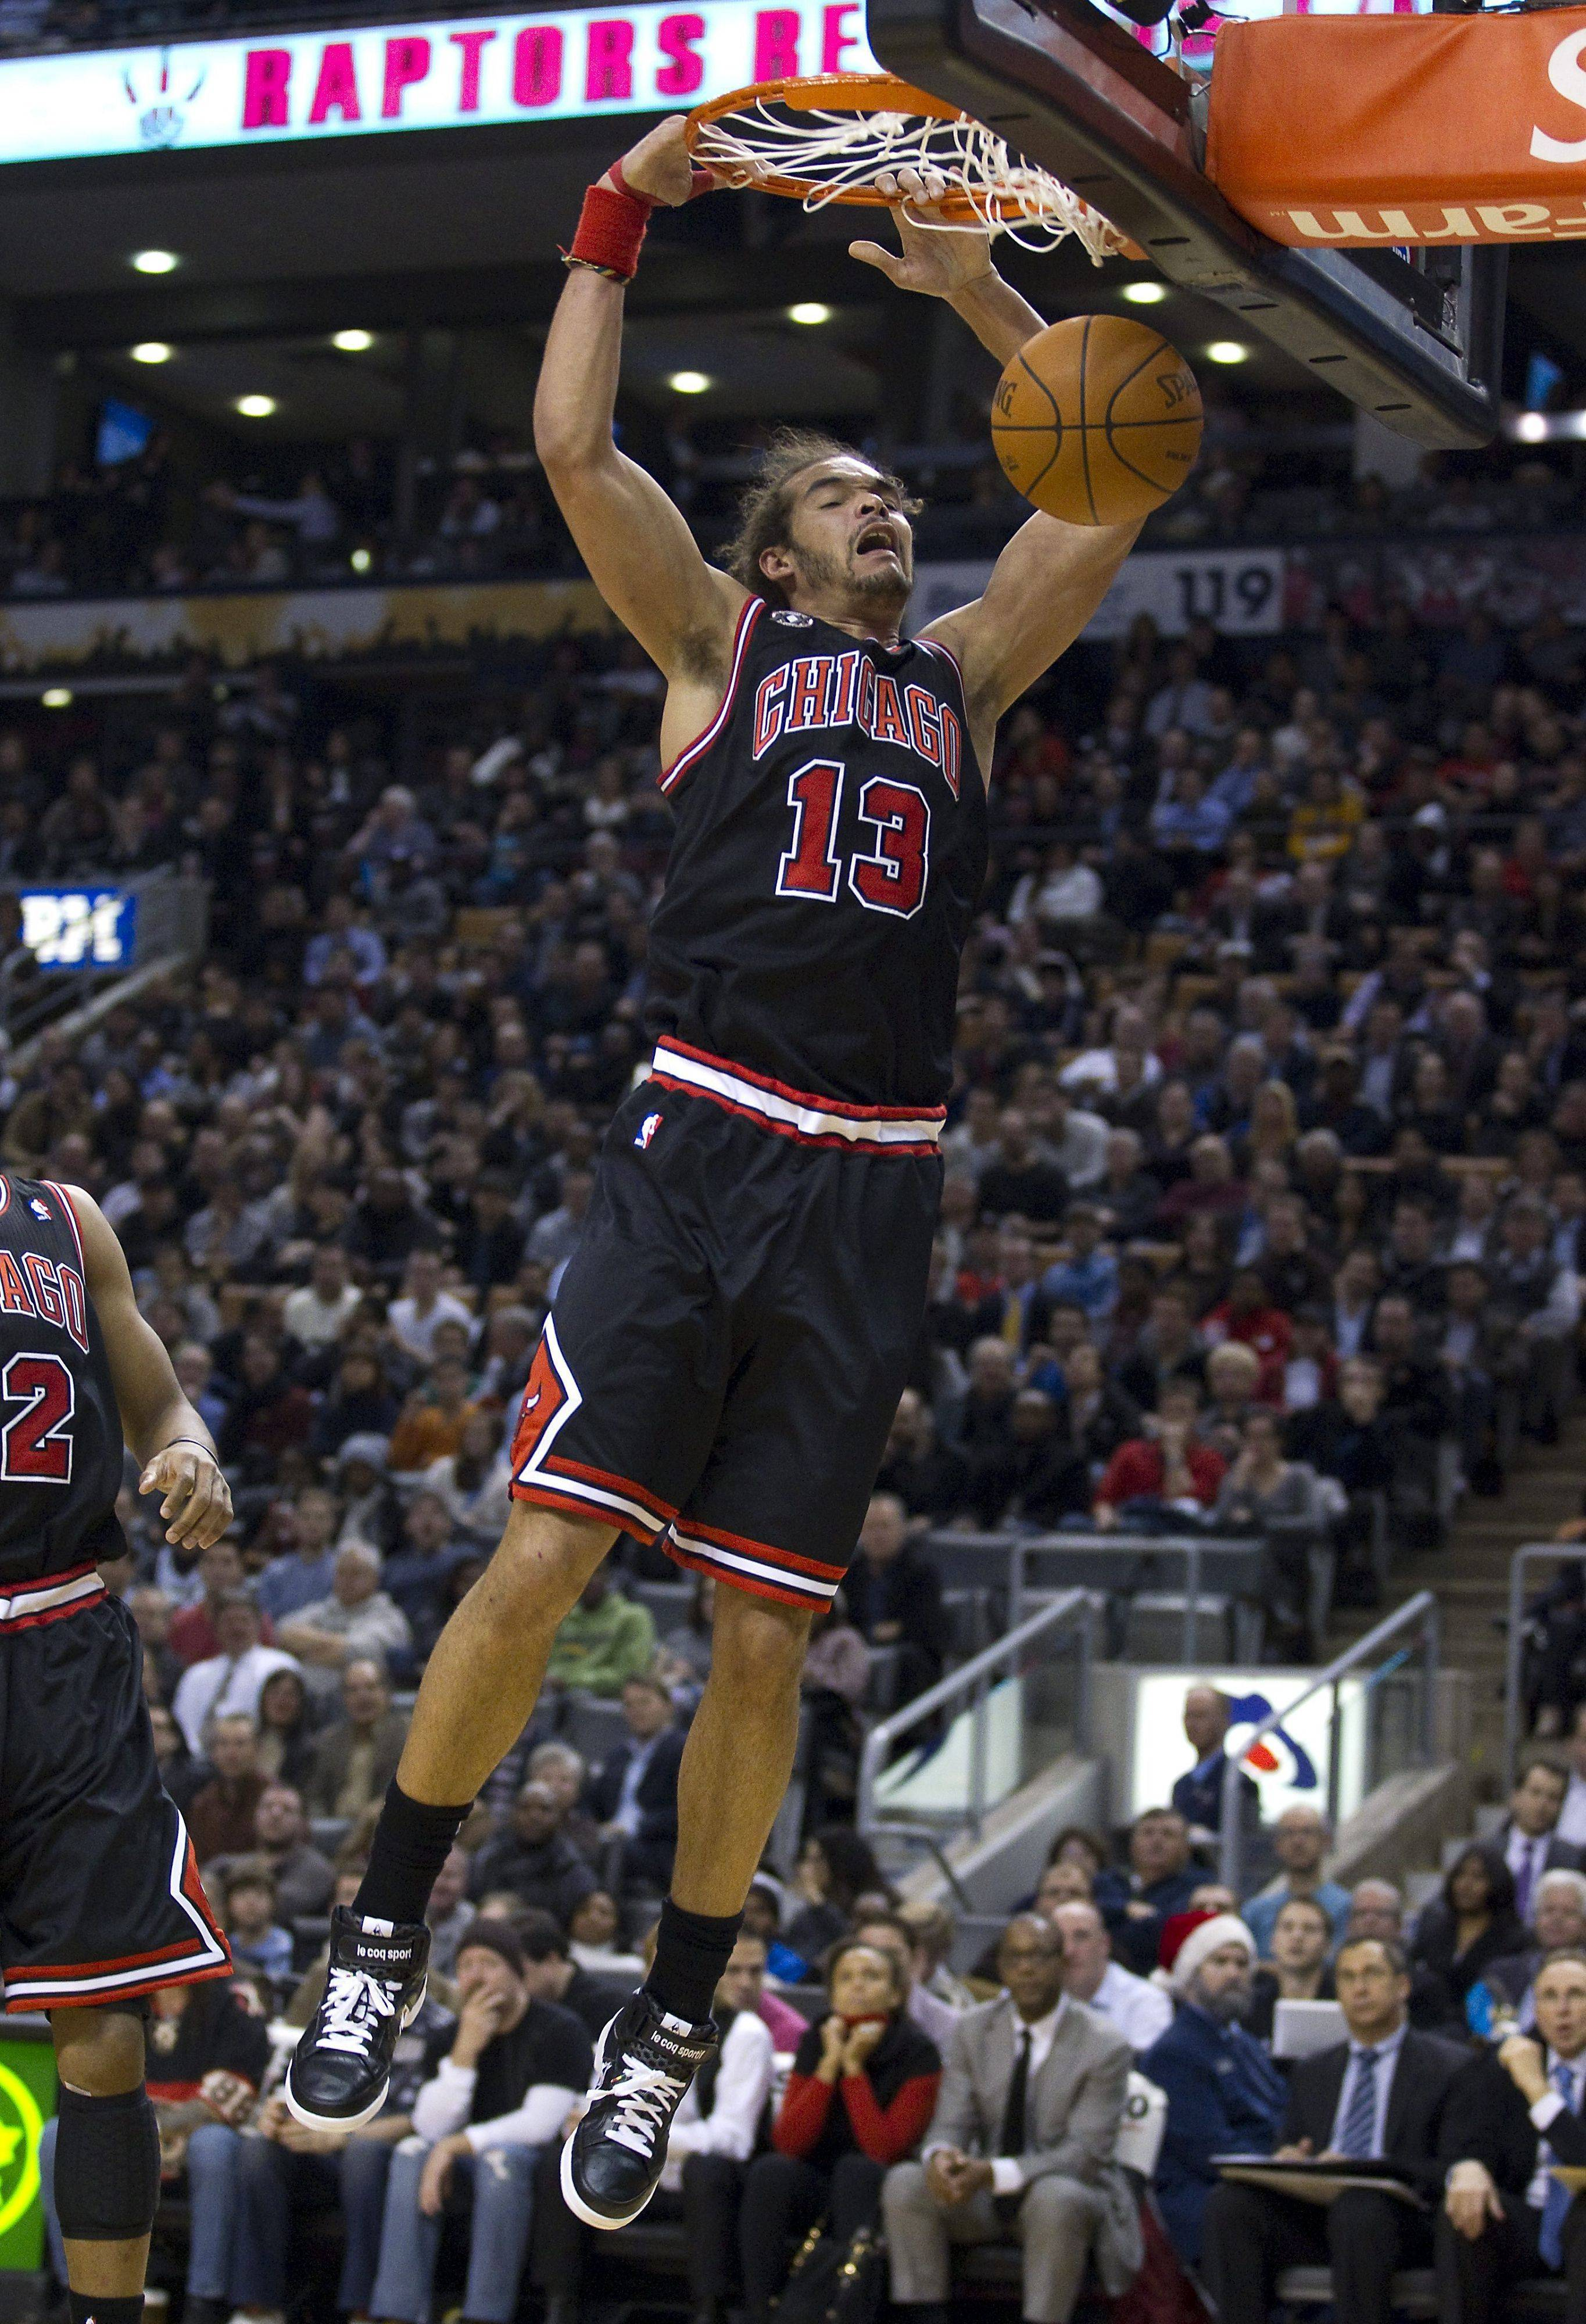 Bulls center Joakim Noah dunks against the Raptors in his final game before undergoing thumb surgery. Noah will be out 8-10 weeks.